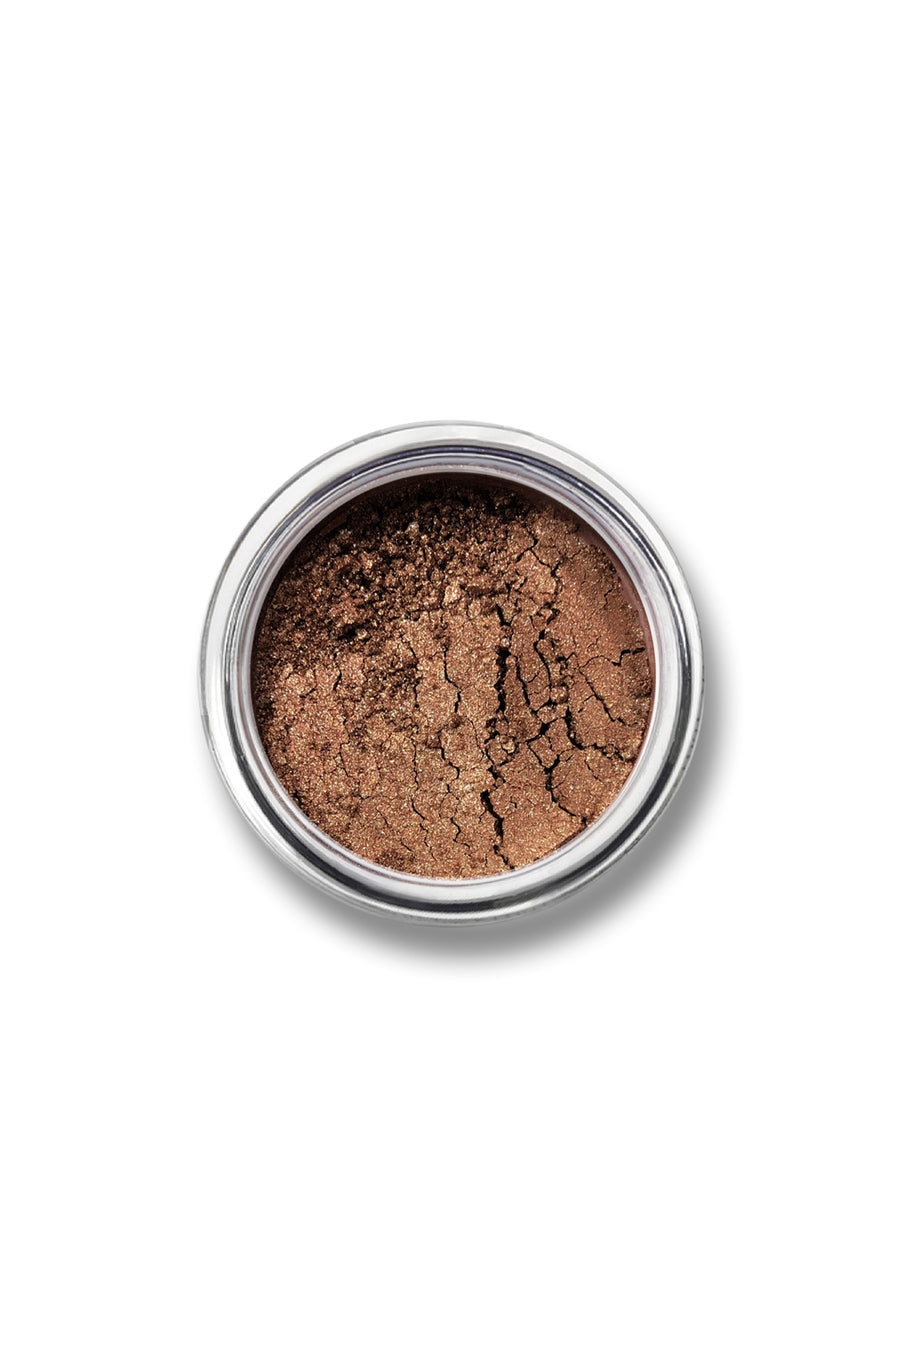 Shimmer Eyeshadow #23 - Shimmery Taupe - Blend Mineral Cosmetics